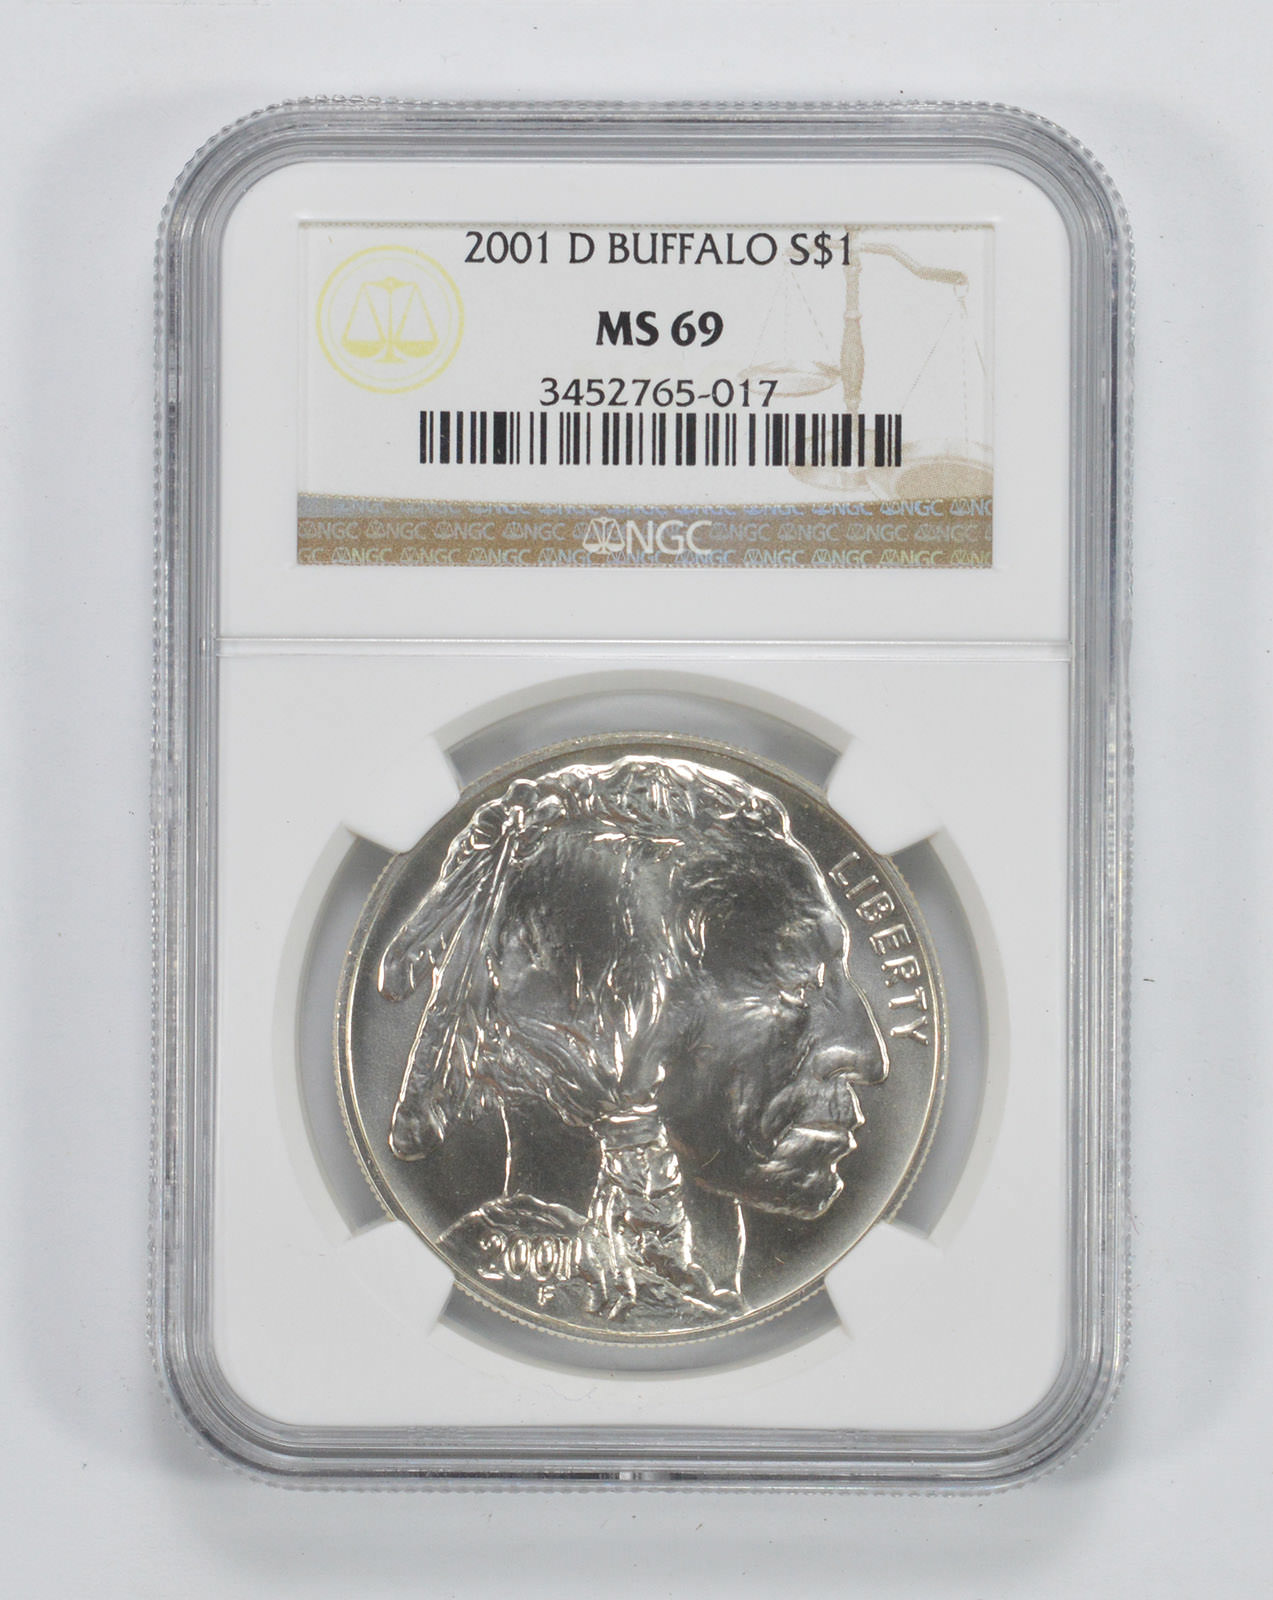 Mint State 69 NGC MS-69 2001-D Silver American Buffalo Commemorative Dollar